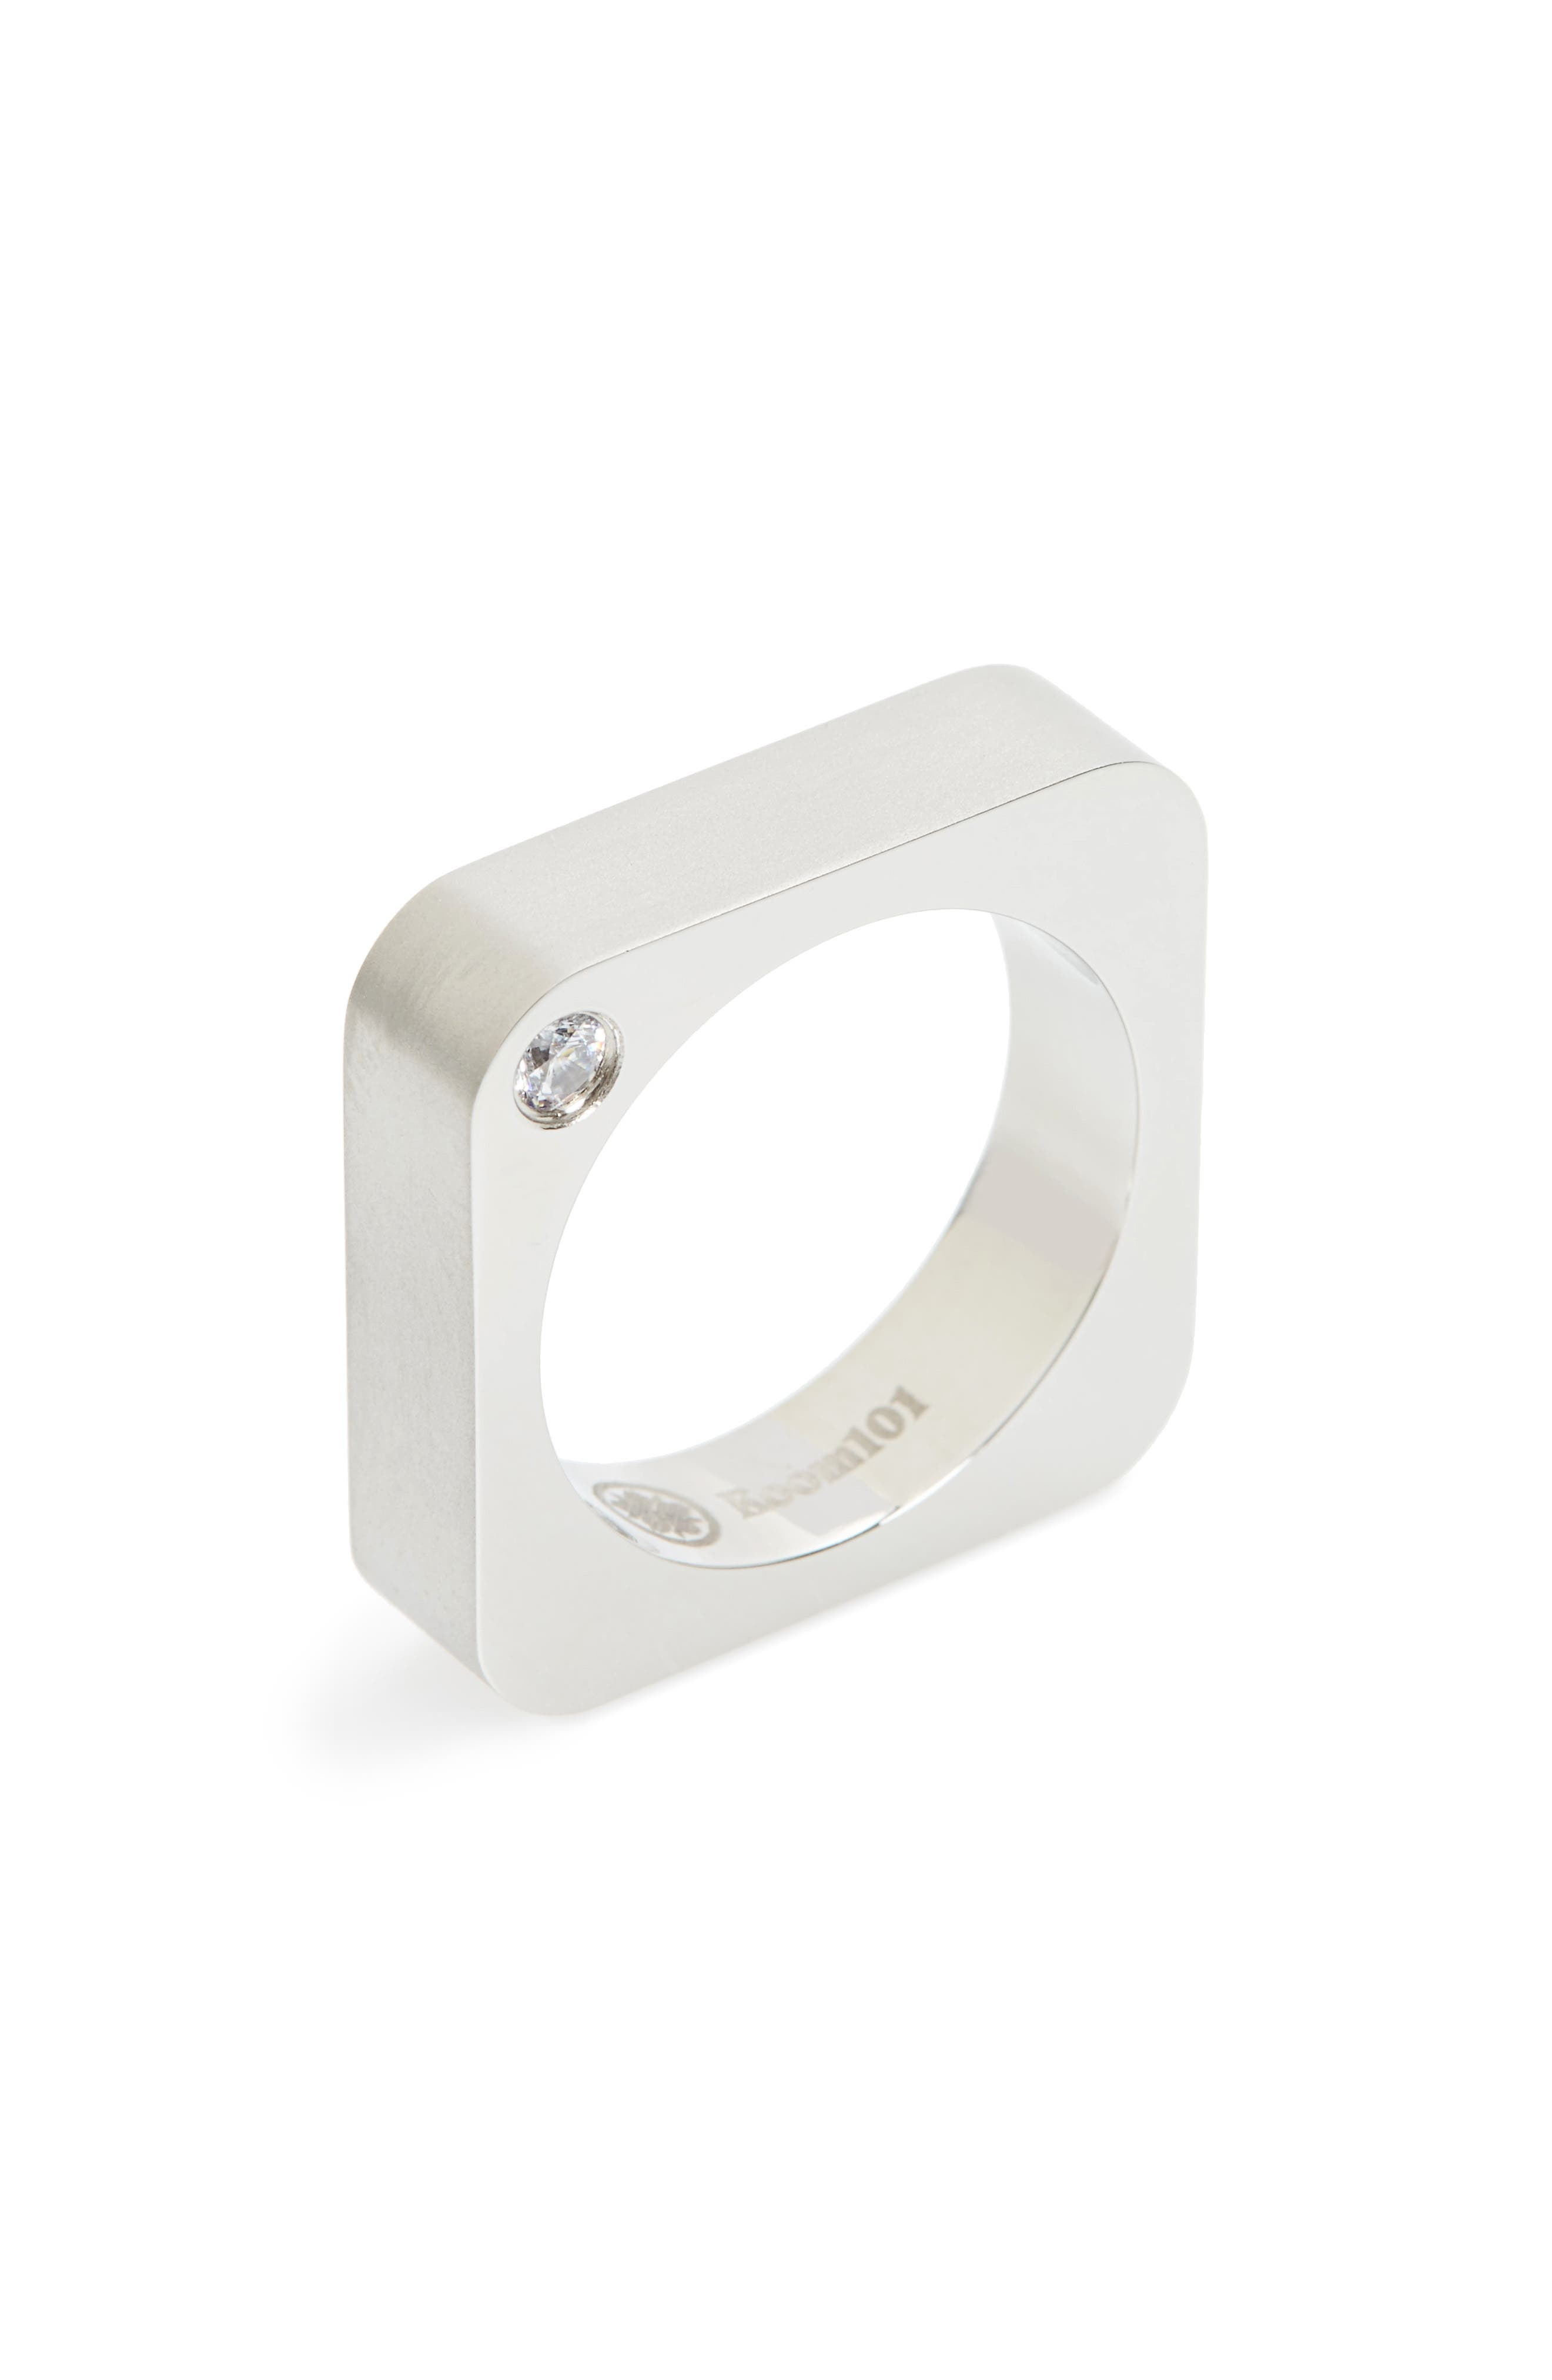 ROOM101 Room 101 Square Ring